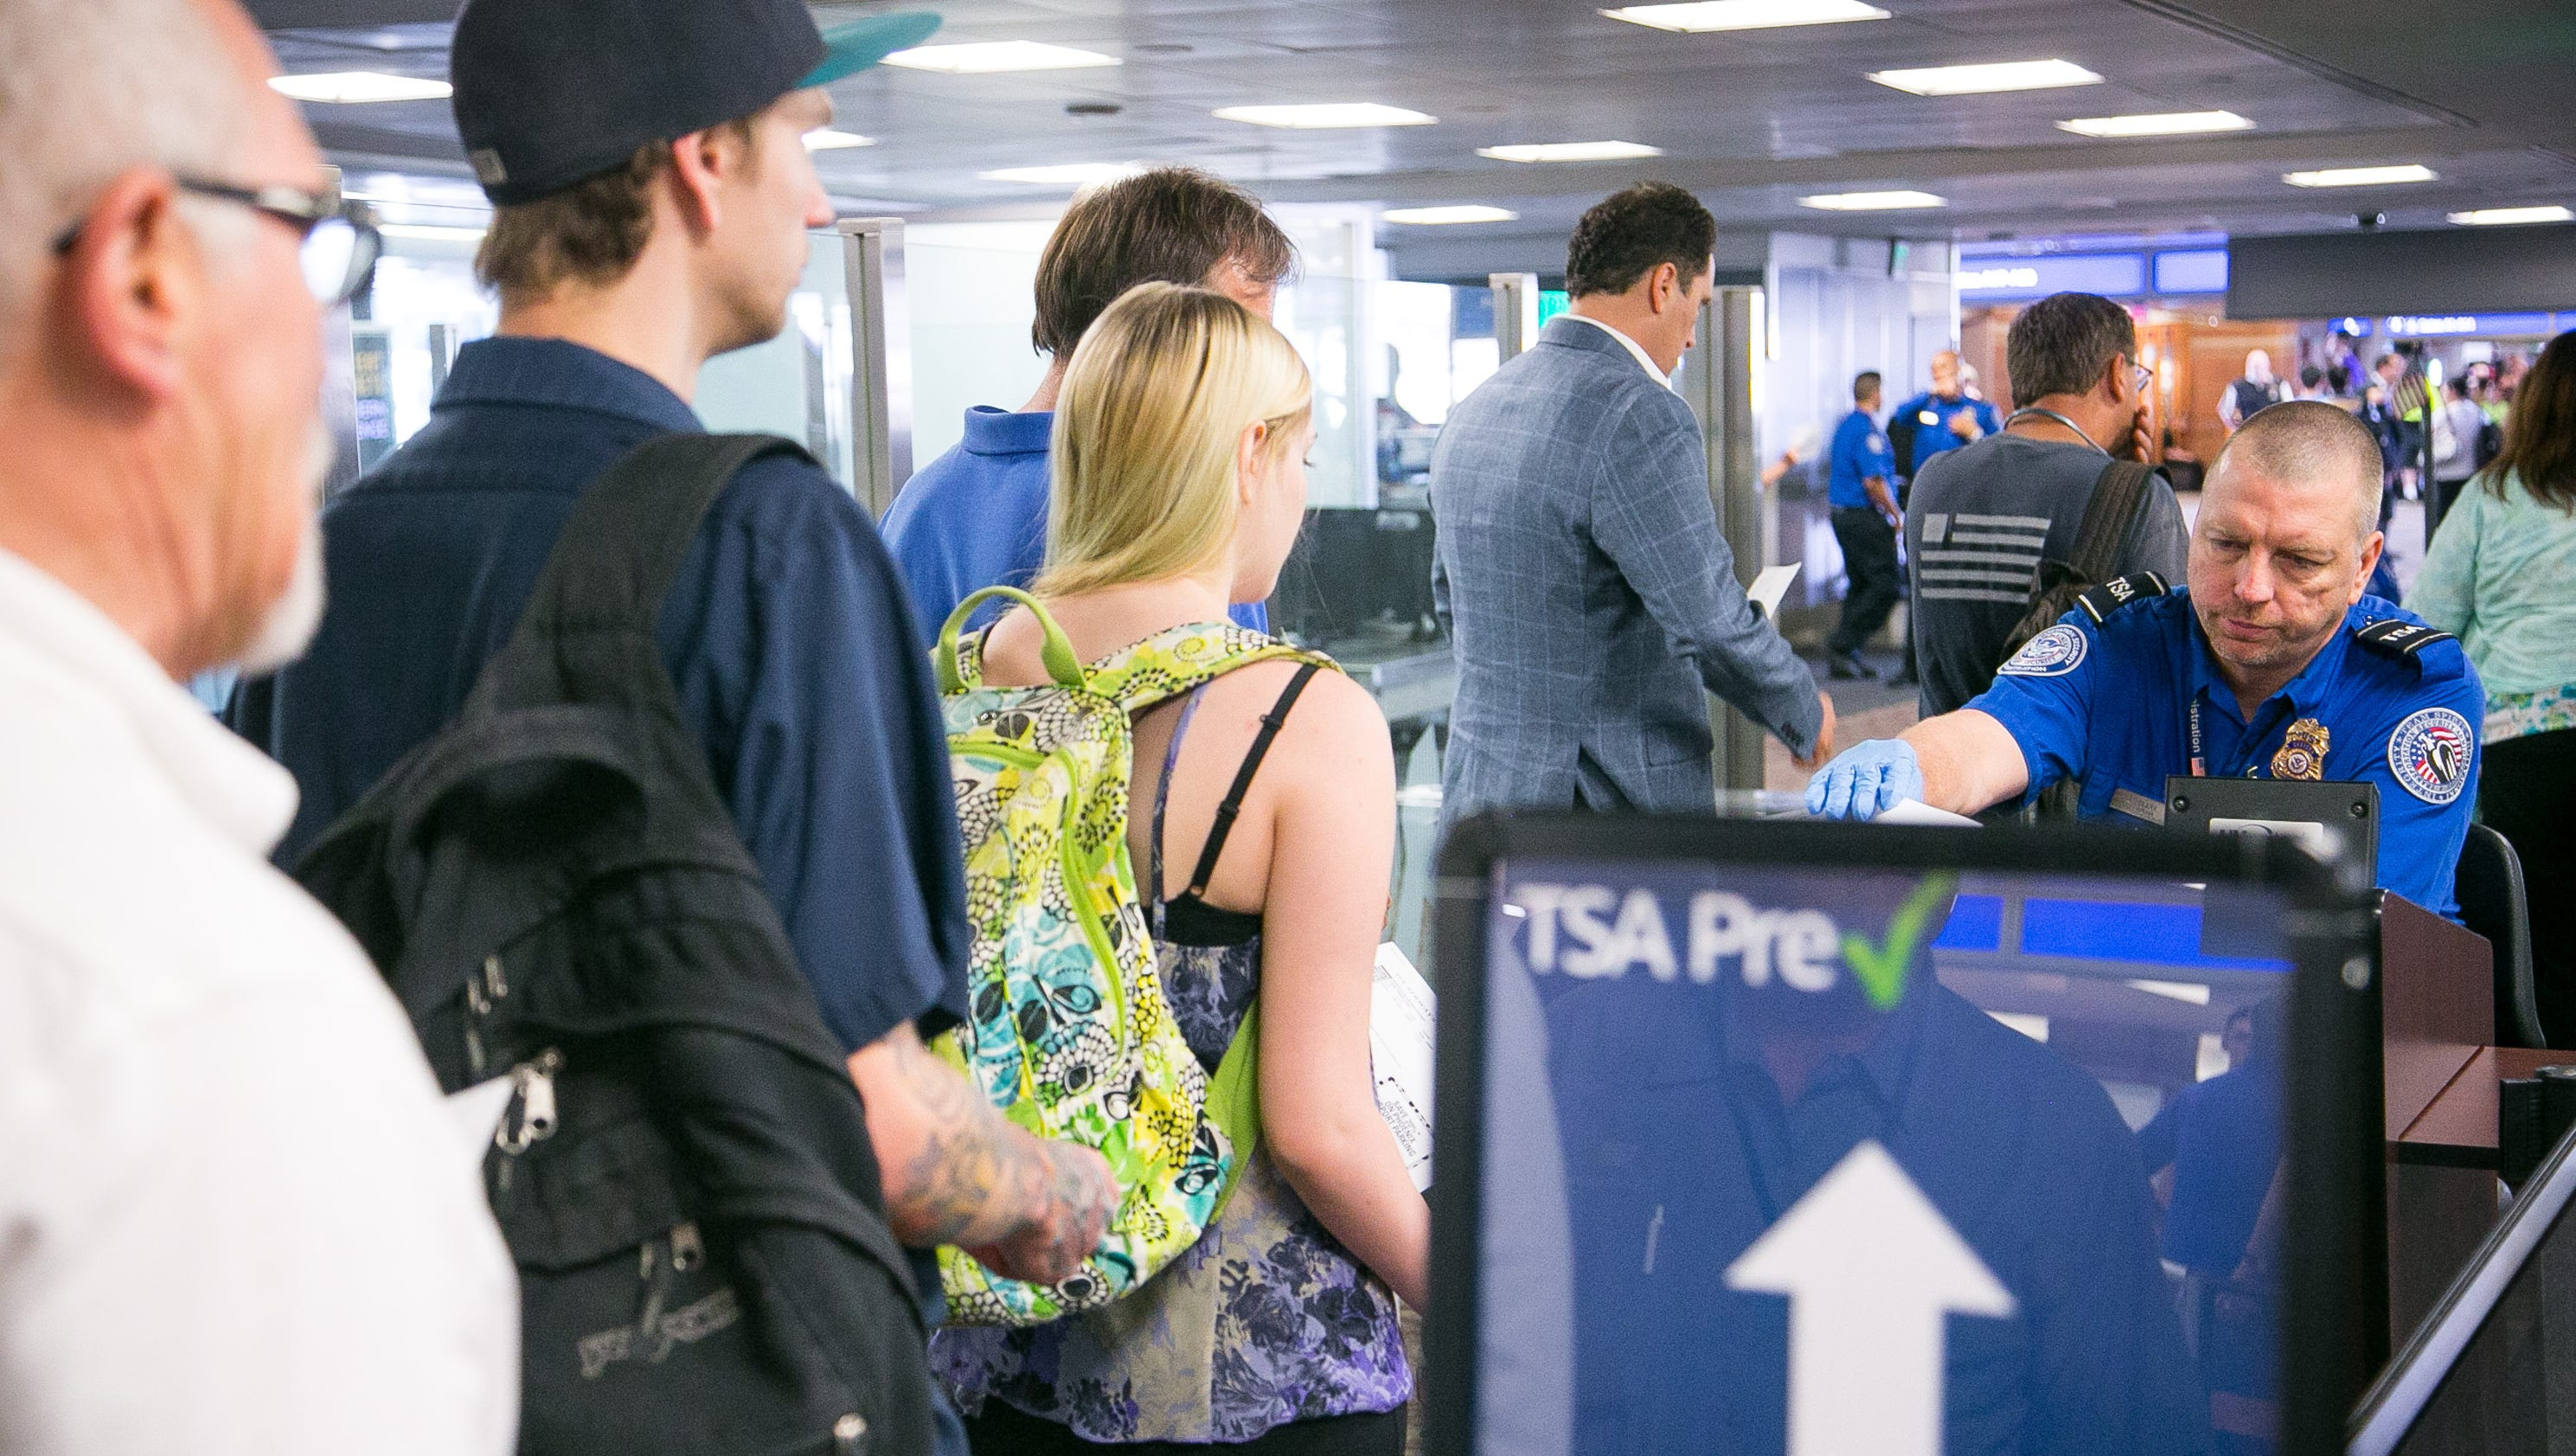 New To Tsa Precheck These Tips Will Speed You Through